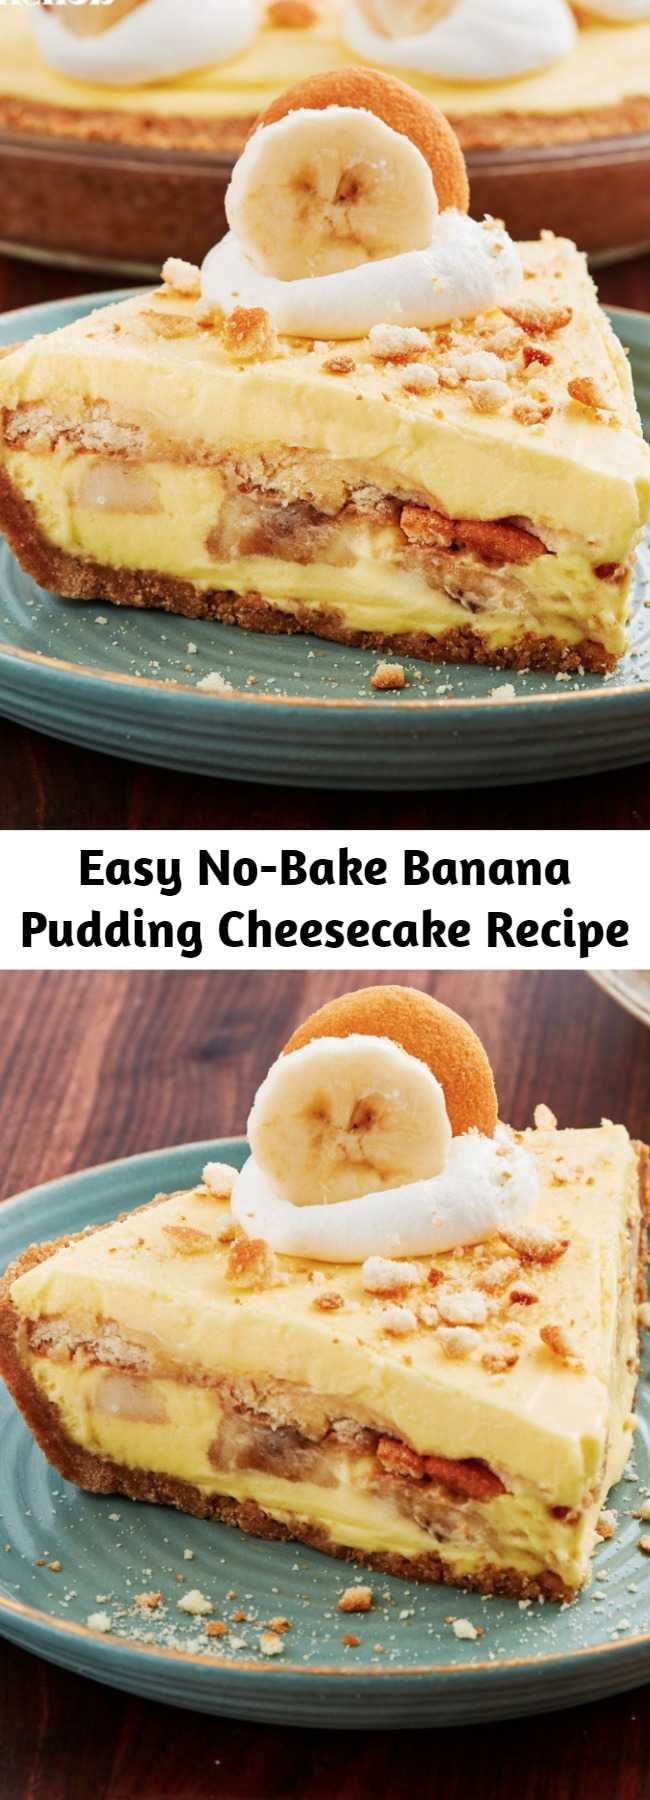 Easy No-Bake Banana Pudding Cheesecake Recipe - Banana pudding makes our heart sing — it's the world's perfect dessert: Classy enough to serve at a wedding, trashy enough to bring in an aluminum baking sheet to a barbecue. This Banana Pudding Cheesecake will make you feel things you've never felt before. #easy #recipe #banana #pudding #Nobake #cheesecake #creamcheese #dessert #nilla #bananapudding #parties